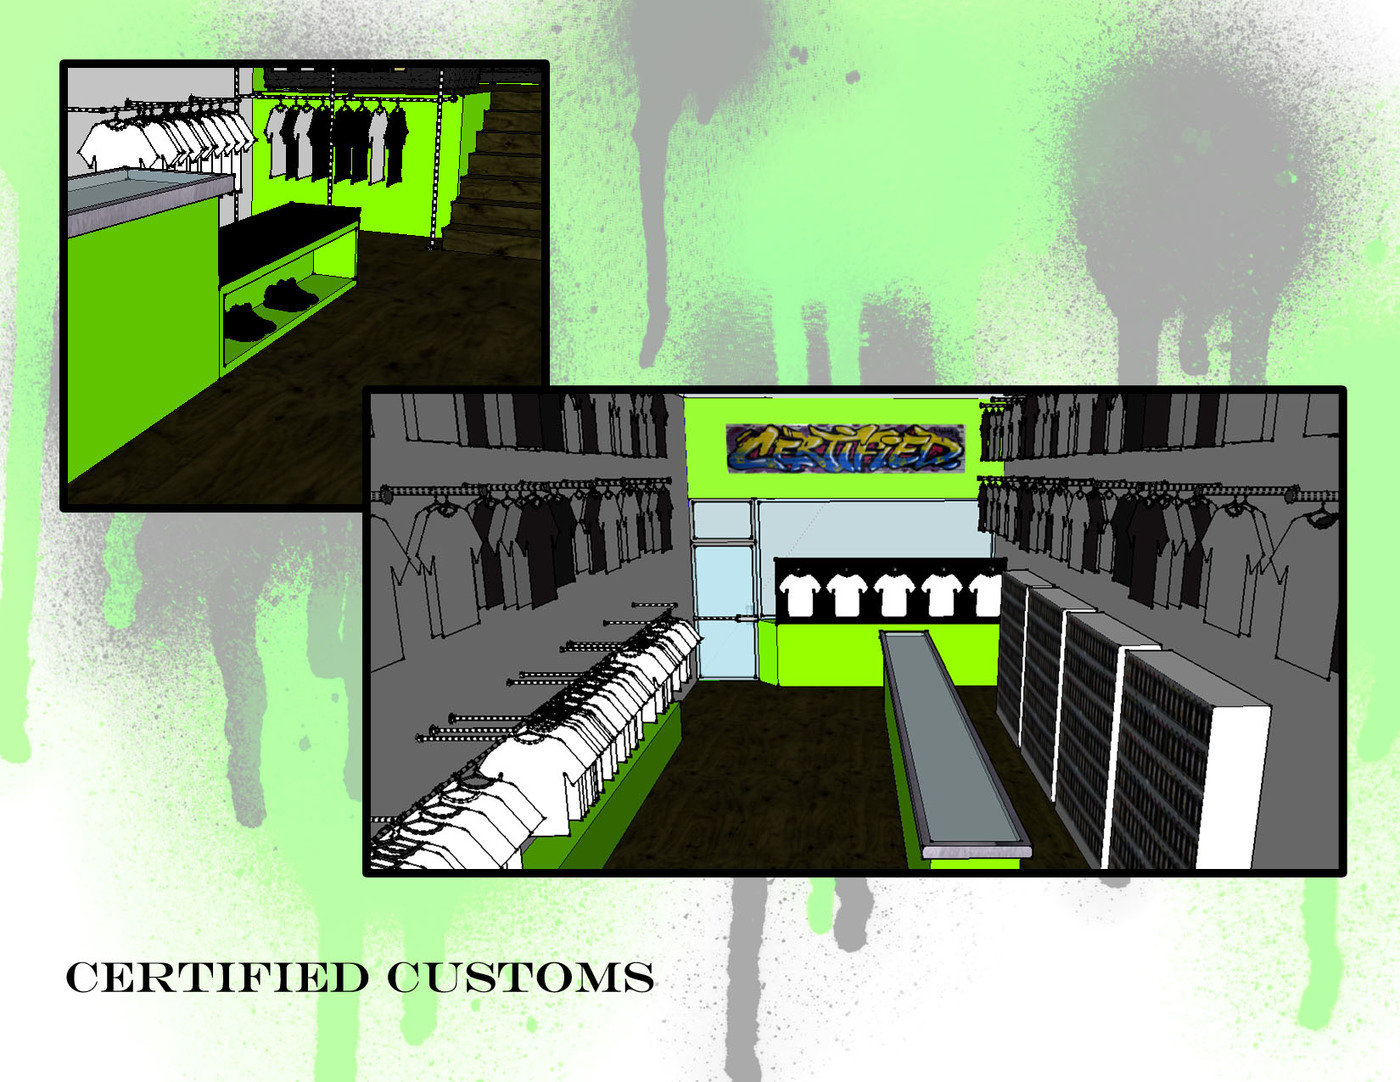 Commercial design projects by renee corbin at for Certified kitchen and bath designer salary